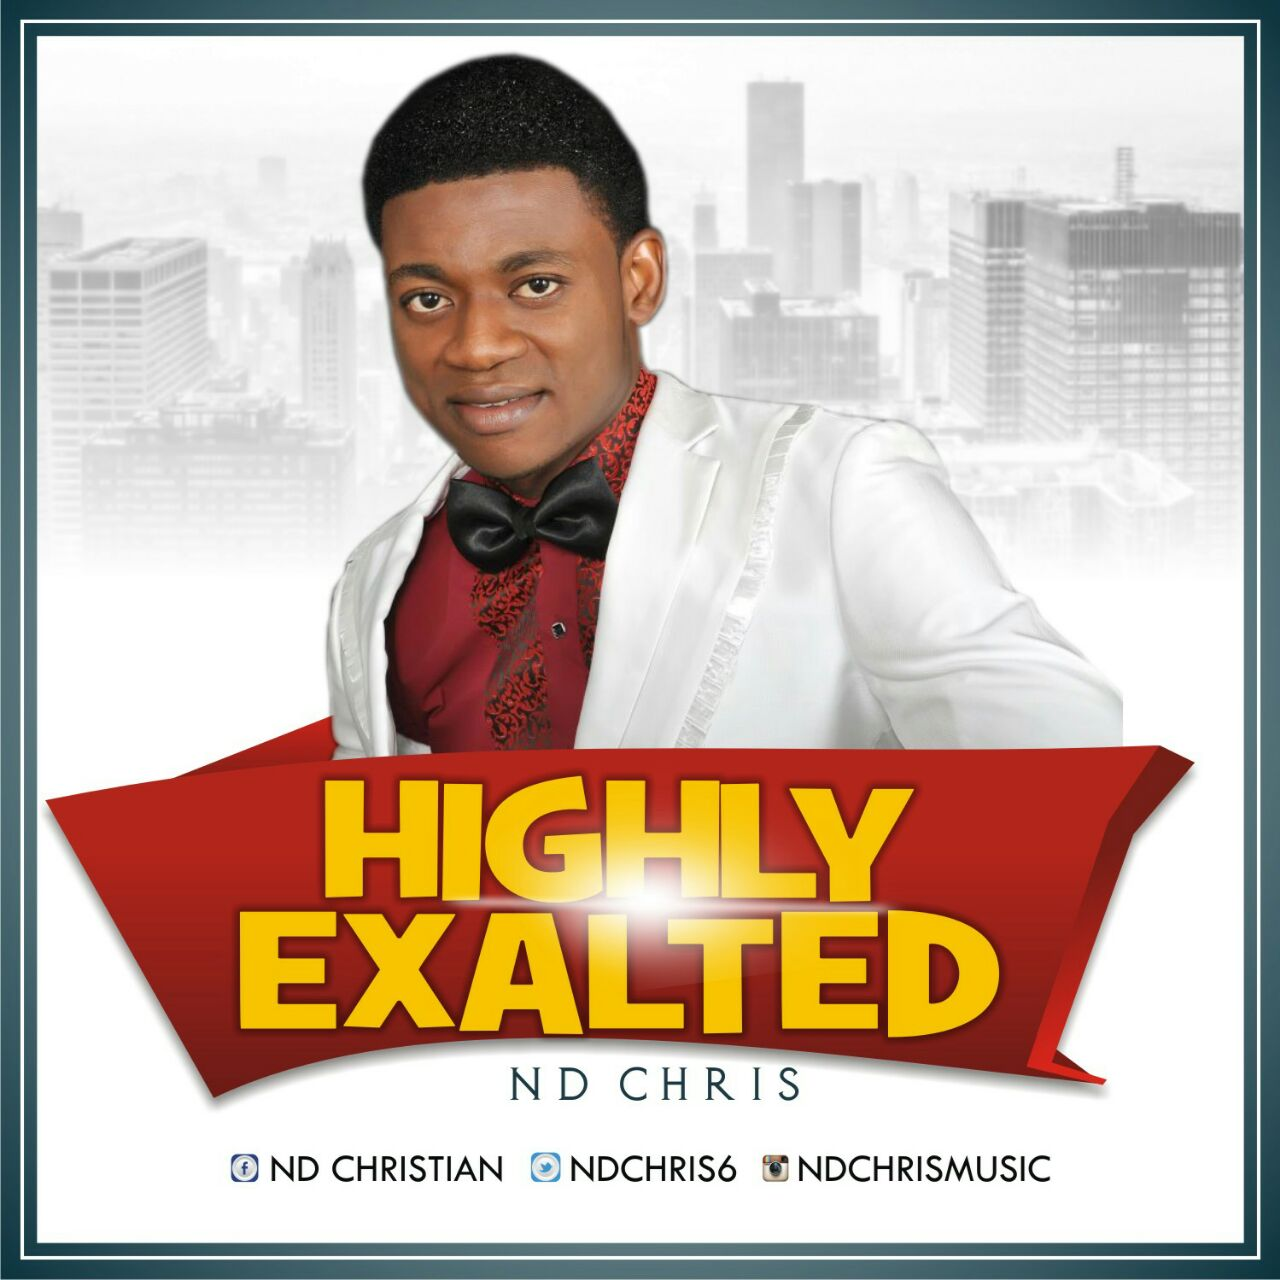 Music: Highly Exalted ~ Nd Chris [@Ndchris6]